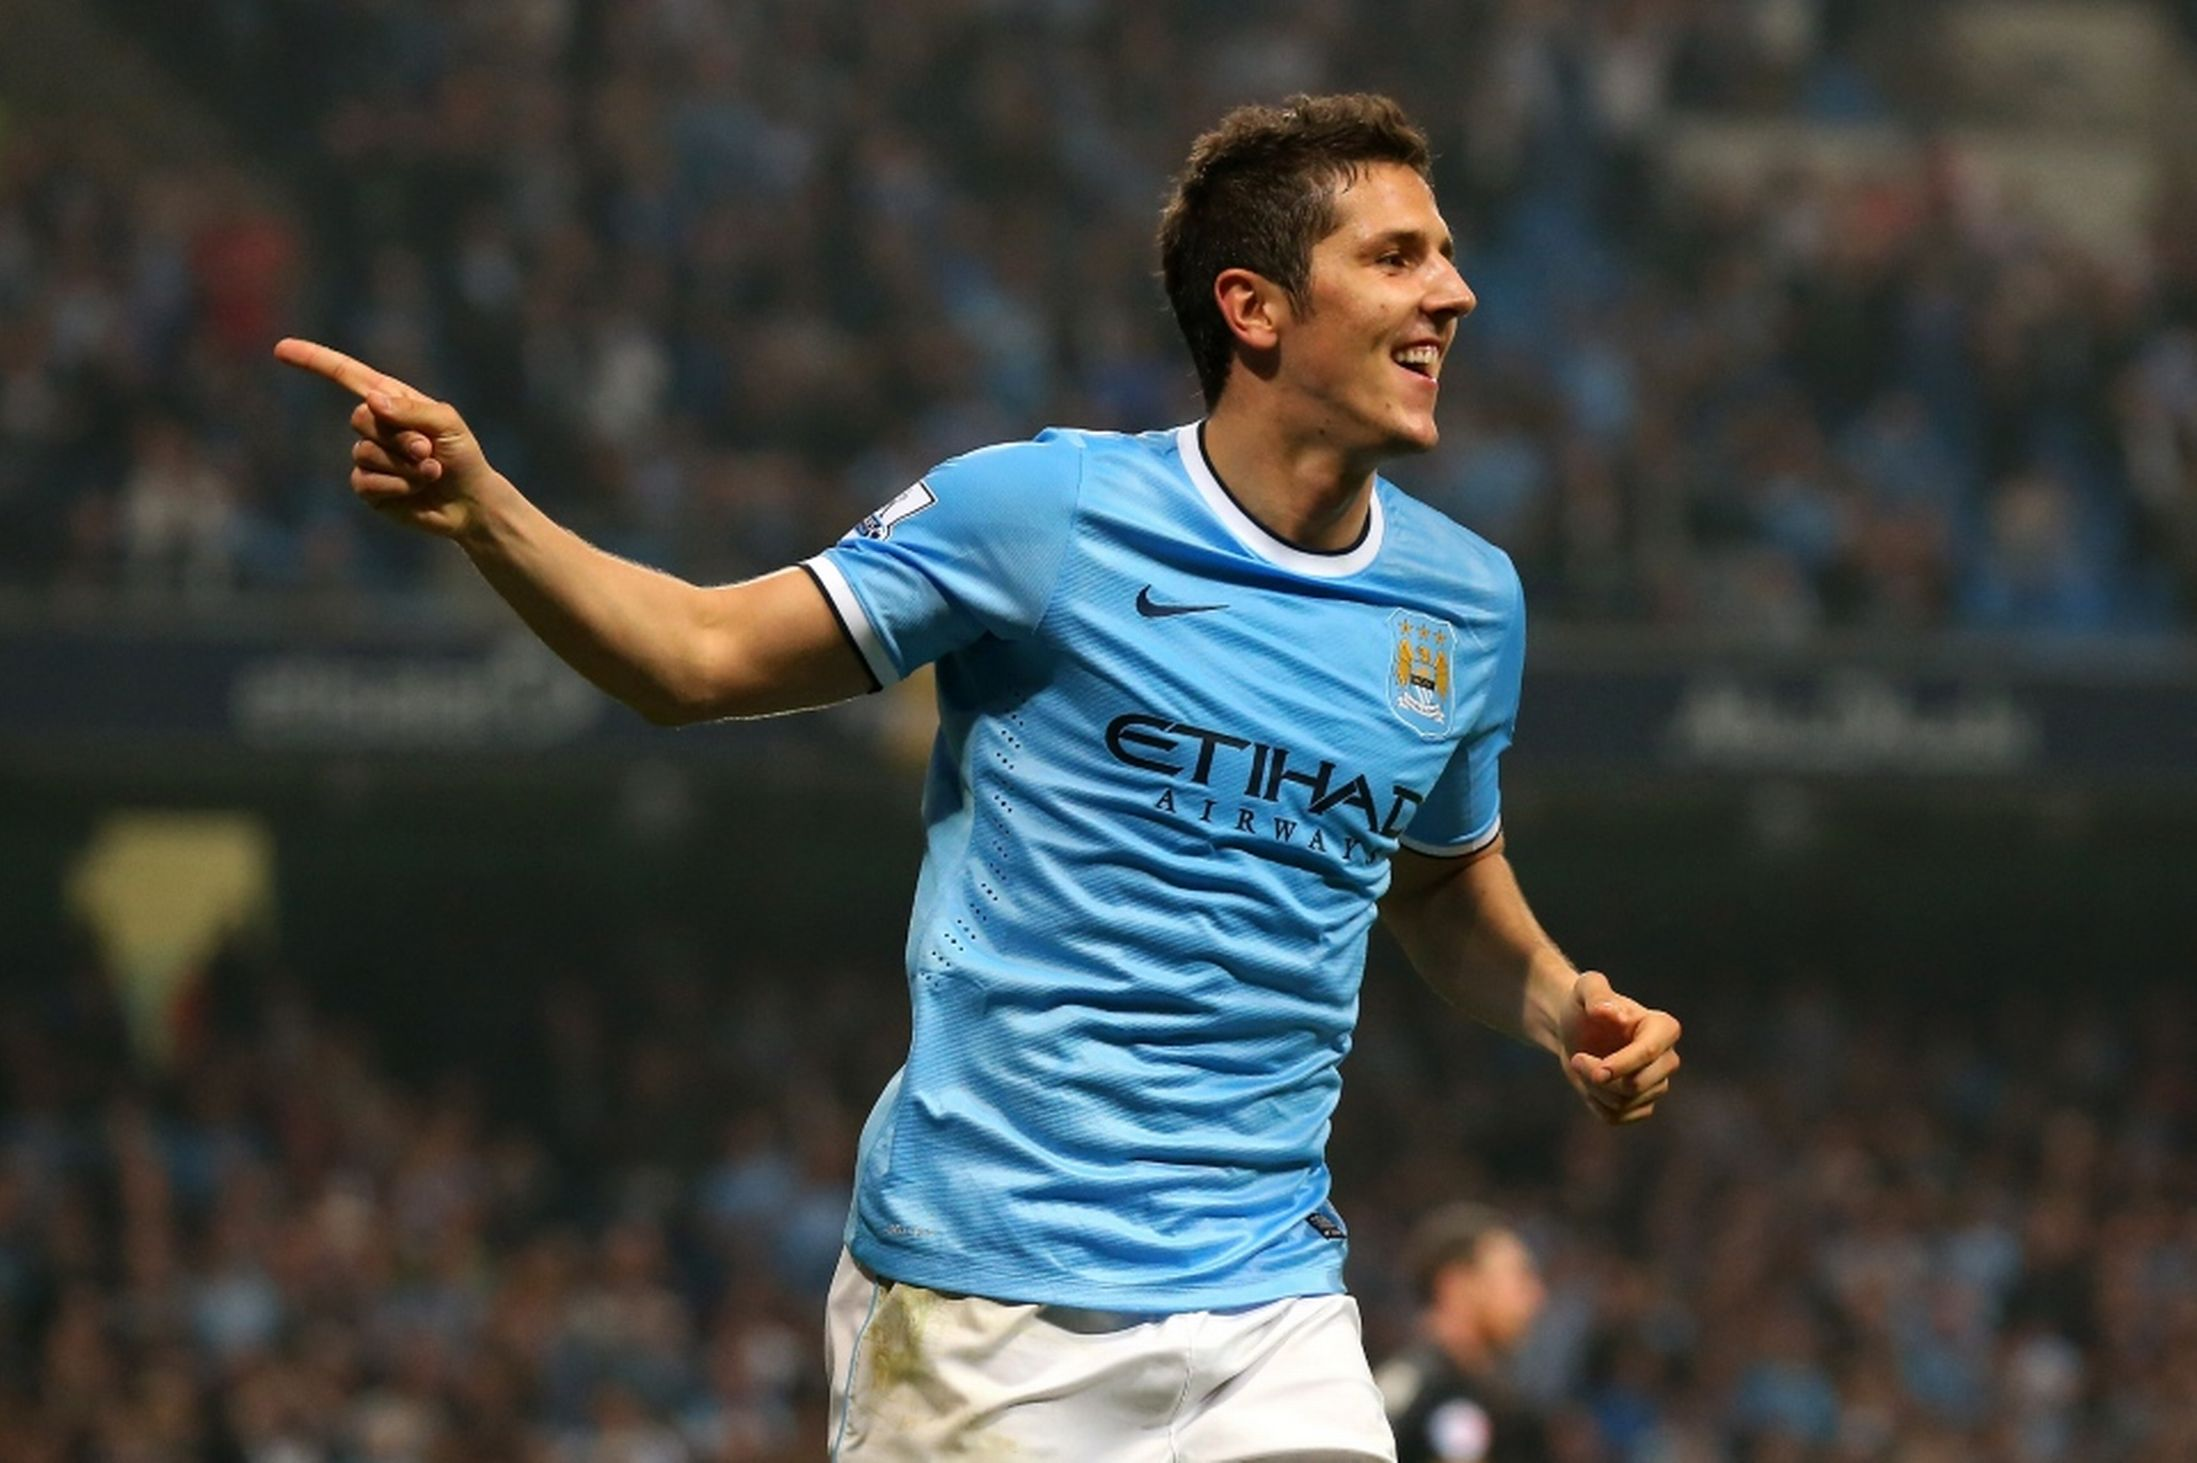 Stevan-Jovetic-Manchester-City-v-Wigan-Athletic